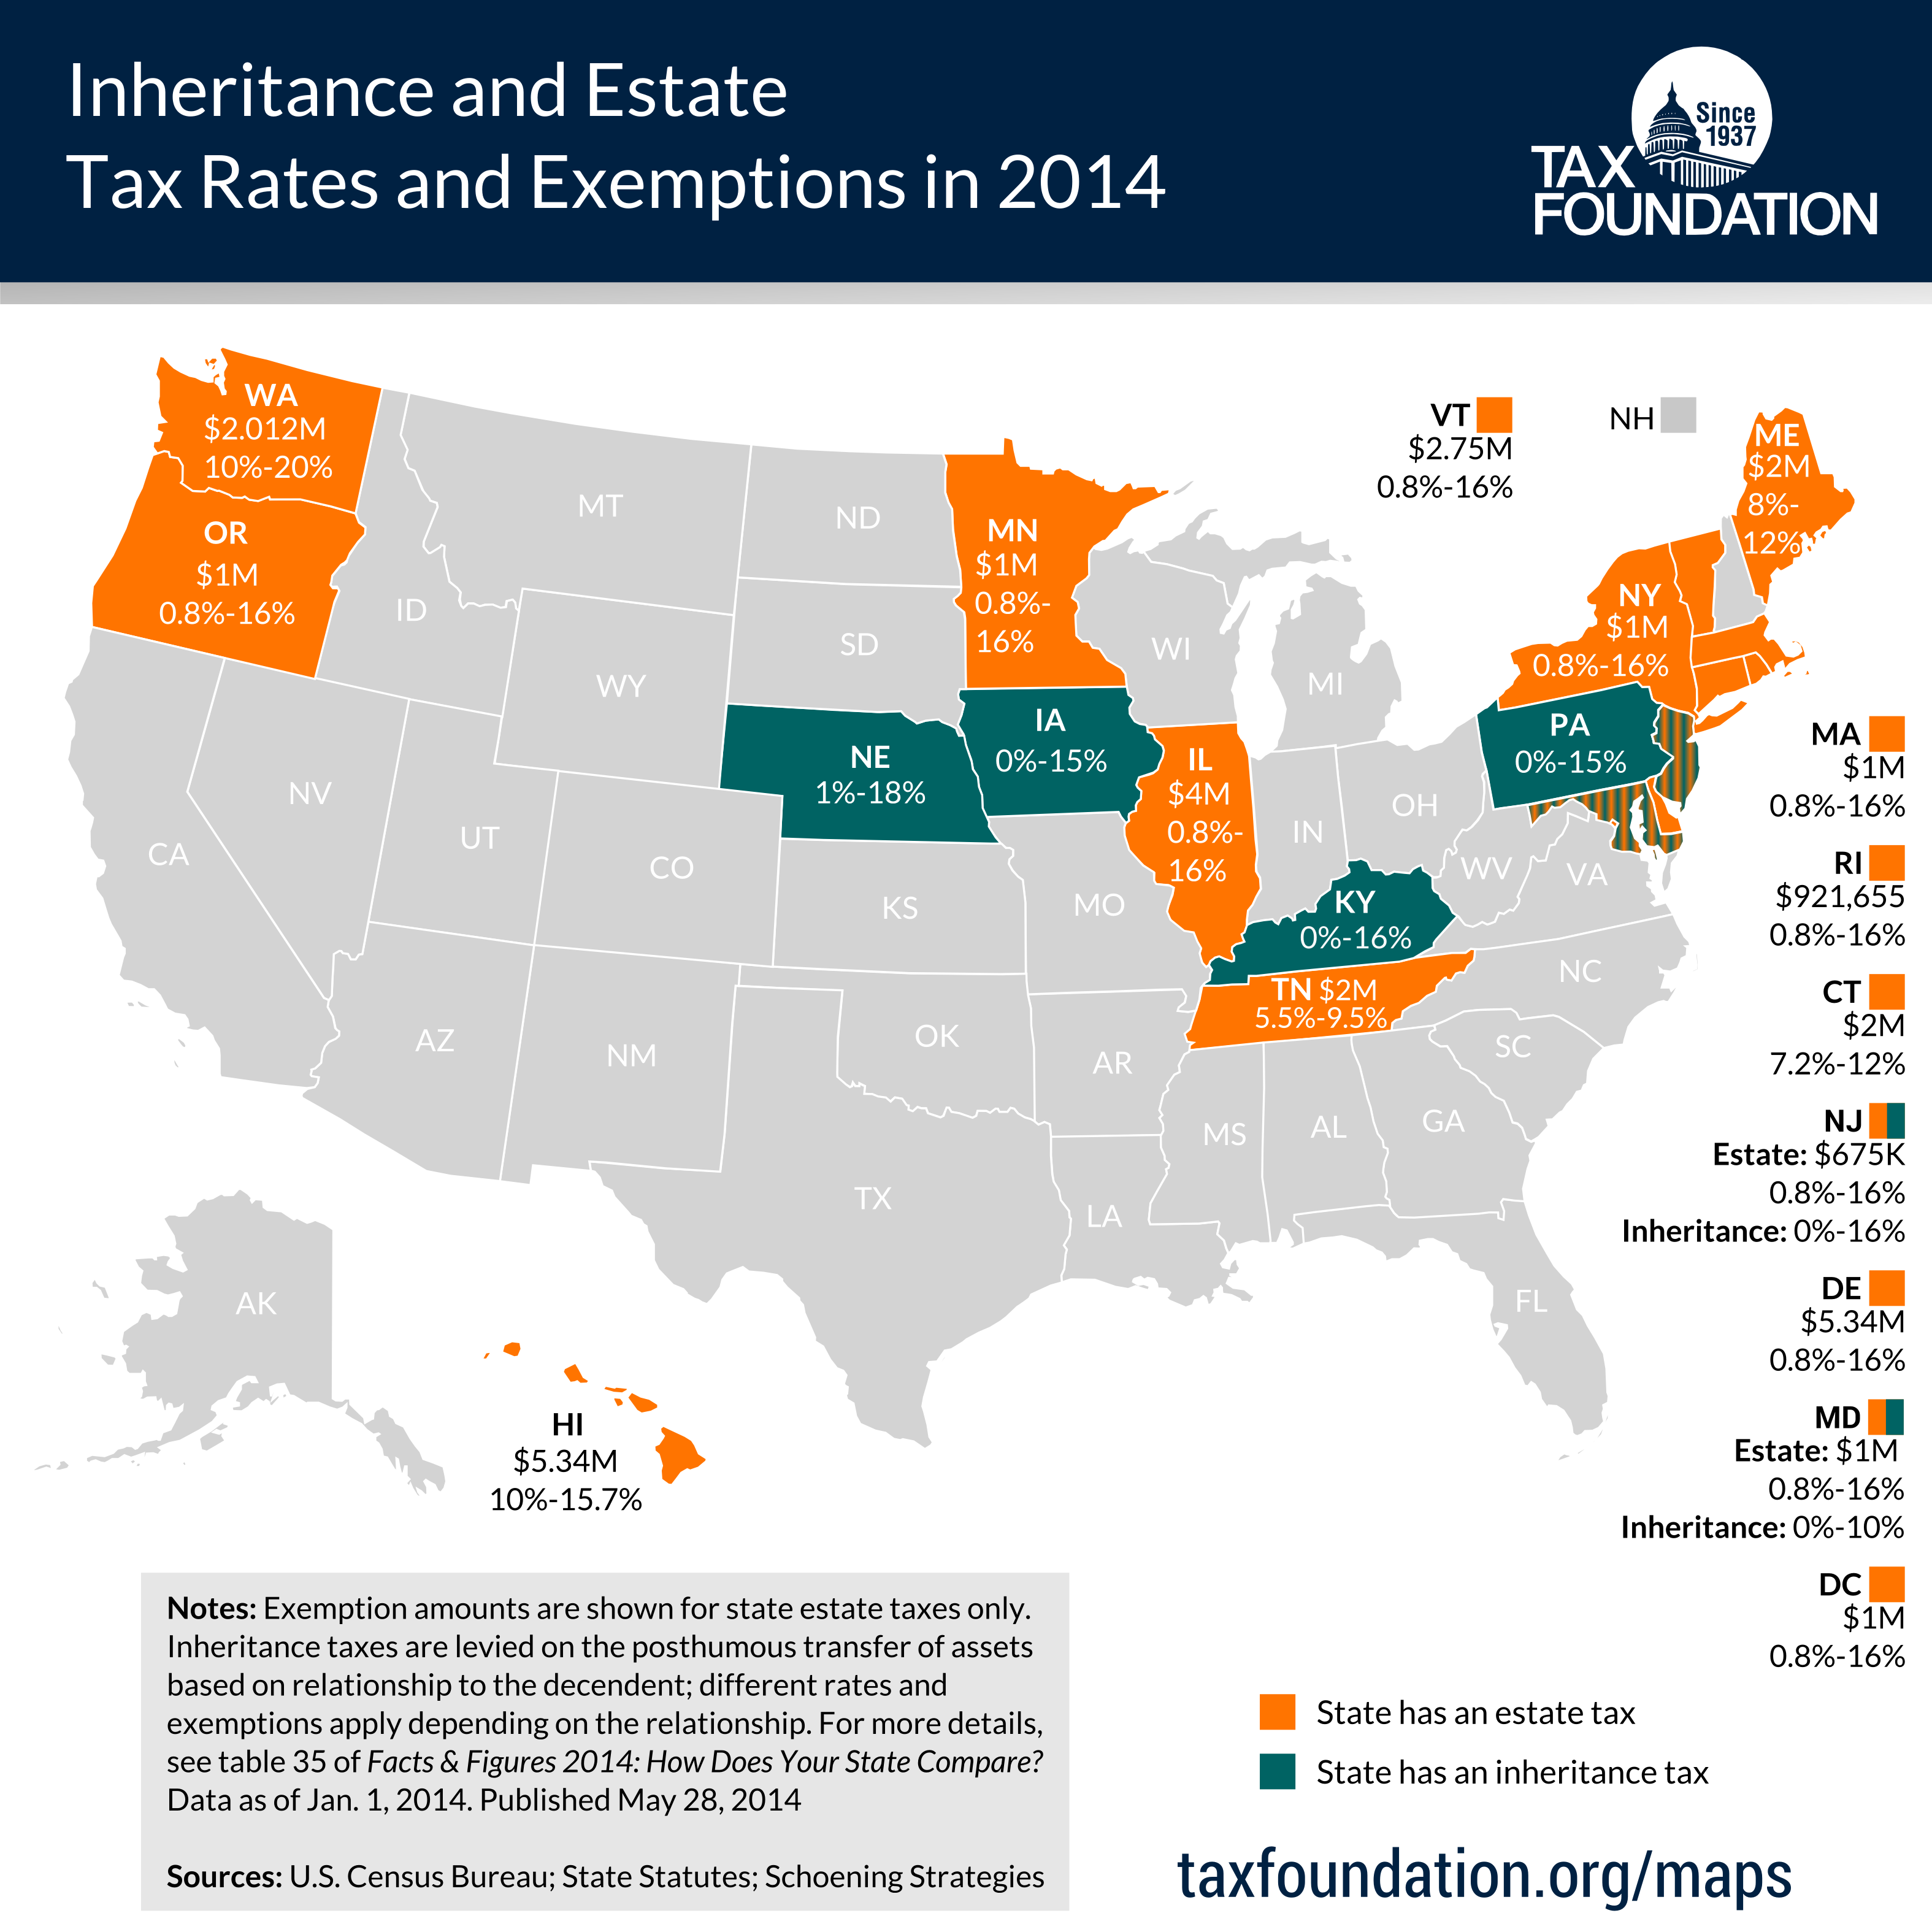 State Estate and Inheritance Taxes in 2014 - Tax Foundation